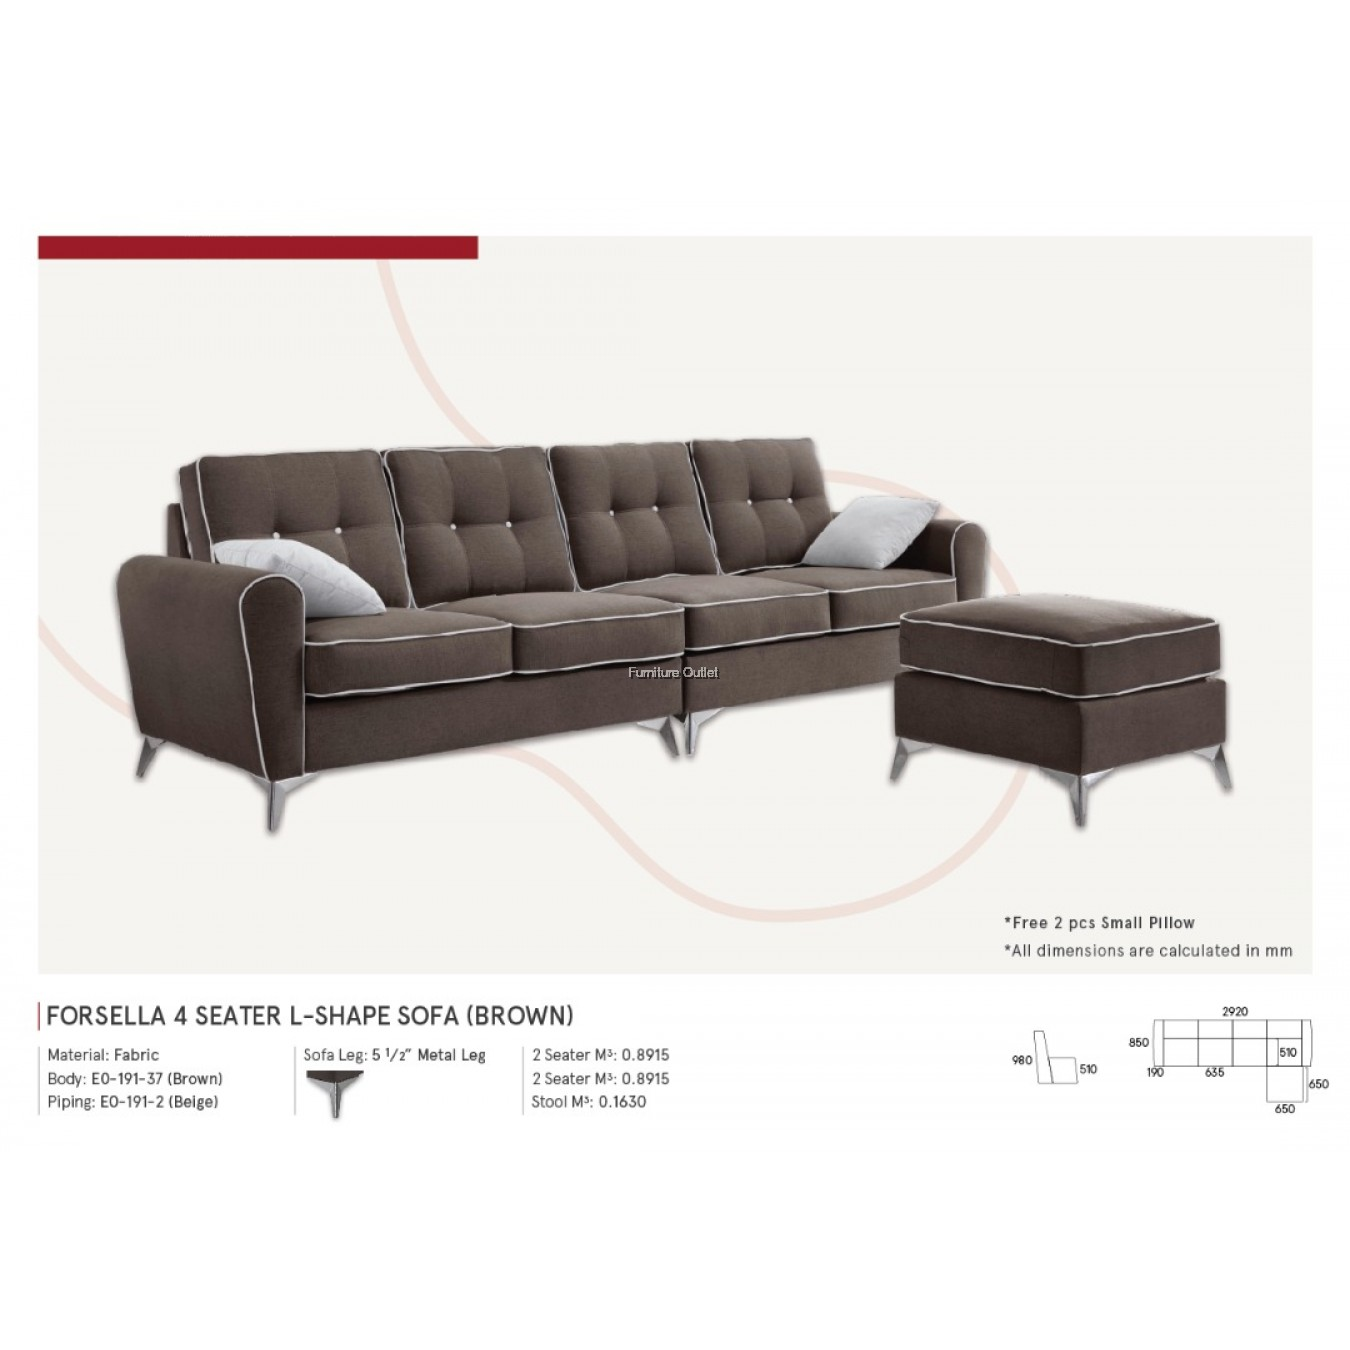 Forsella L-Shape 4 Seater